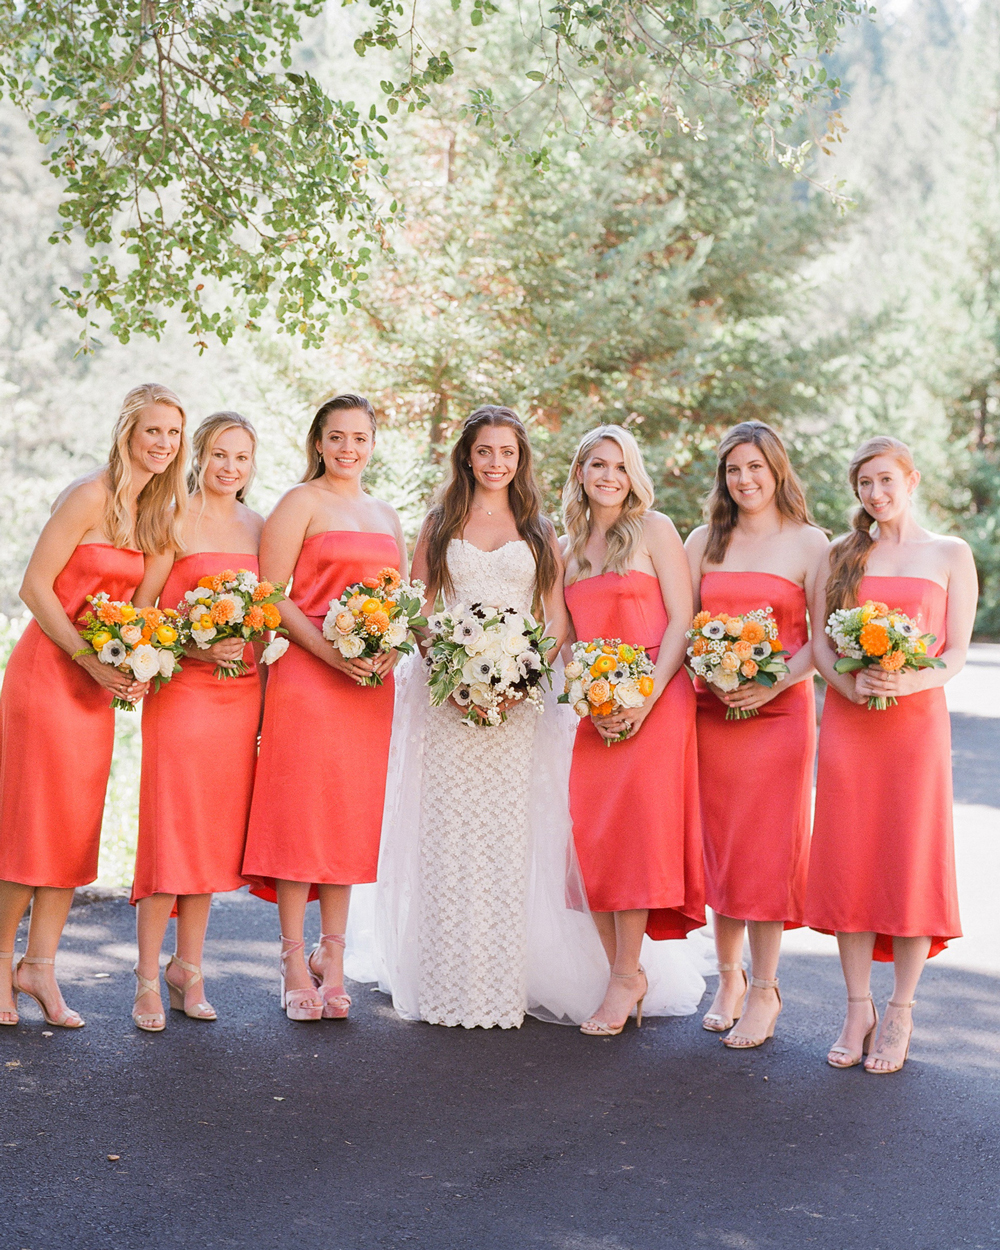 15 Coral Bridesmaids' Dresses Your Wedding Party Will Love